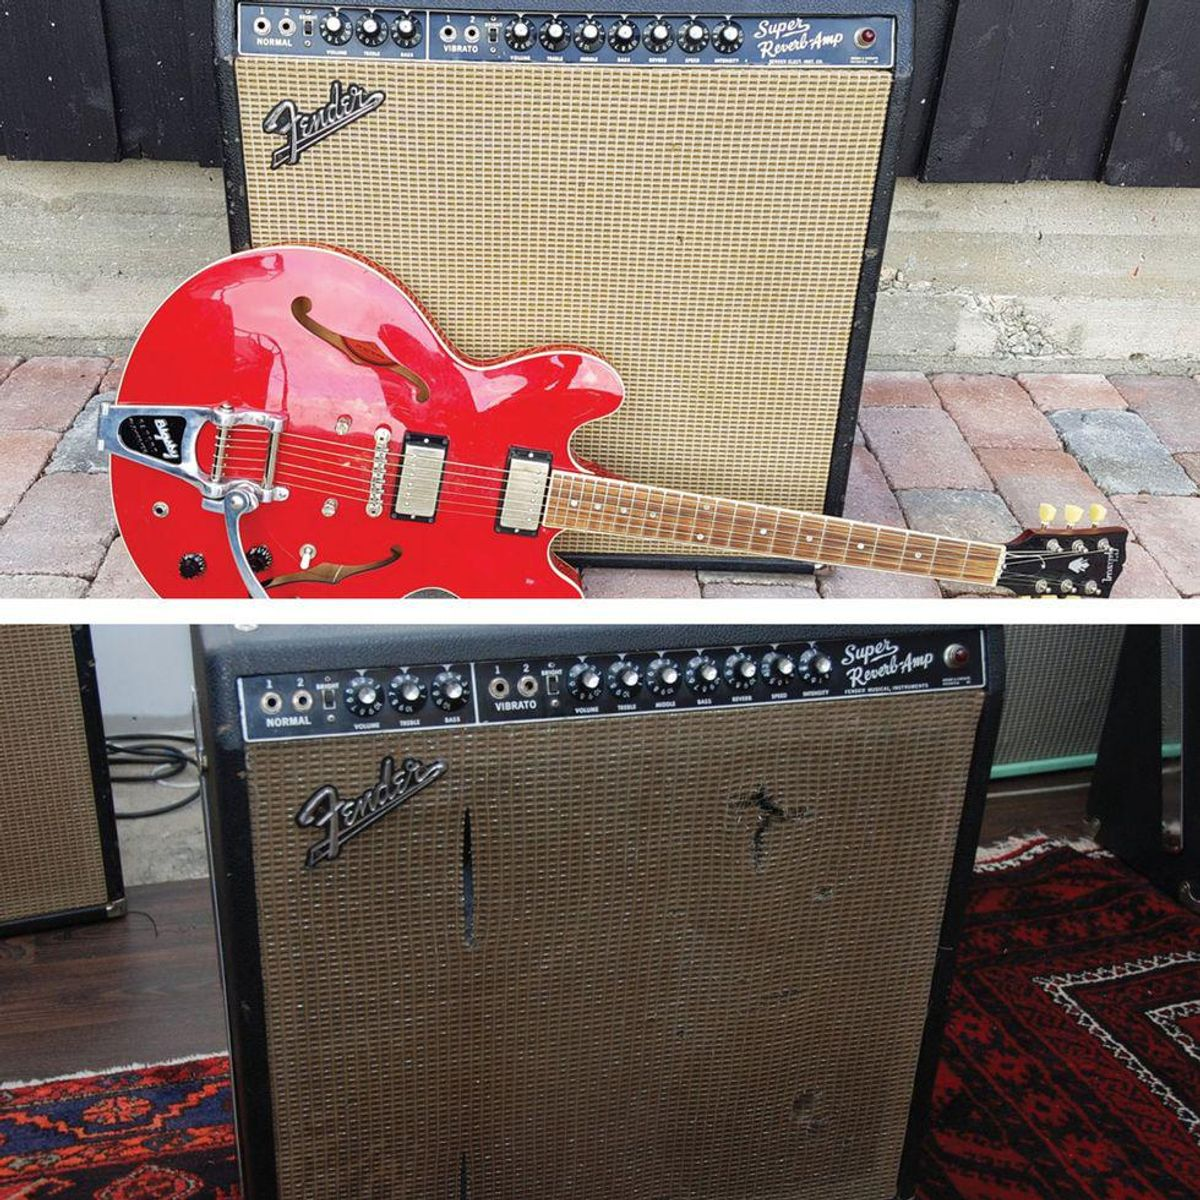 Meet My 1965 Super Reverb—The Greatest Amp I've Ever Played